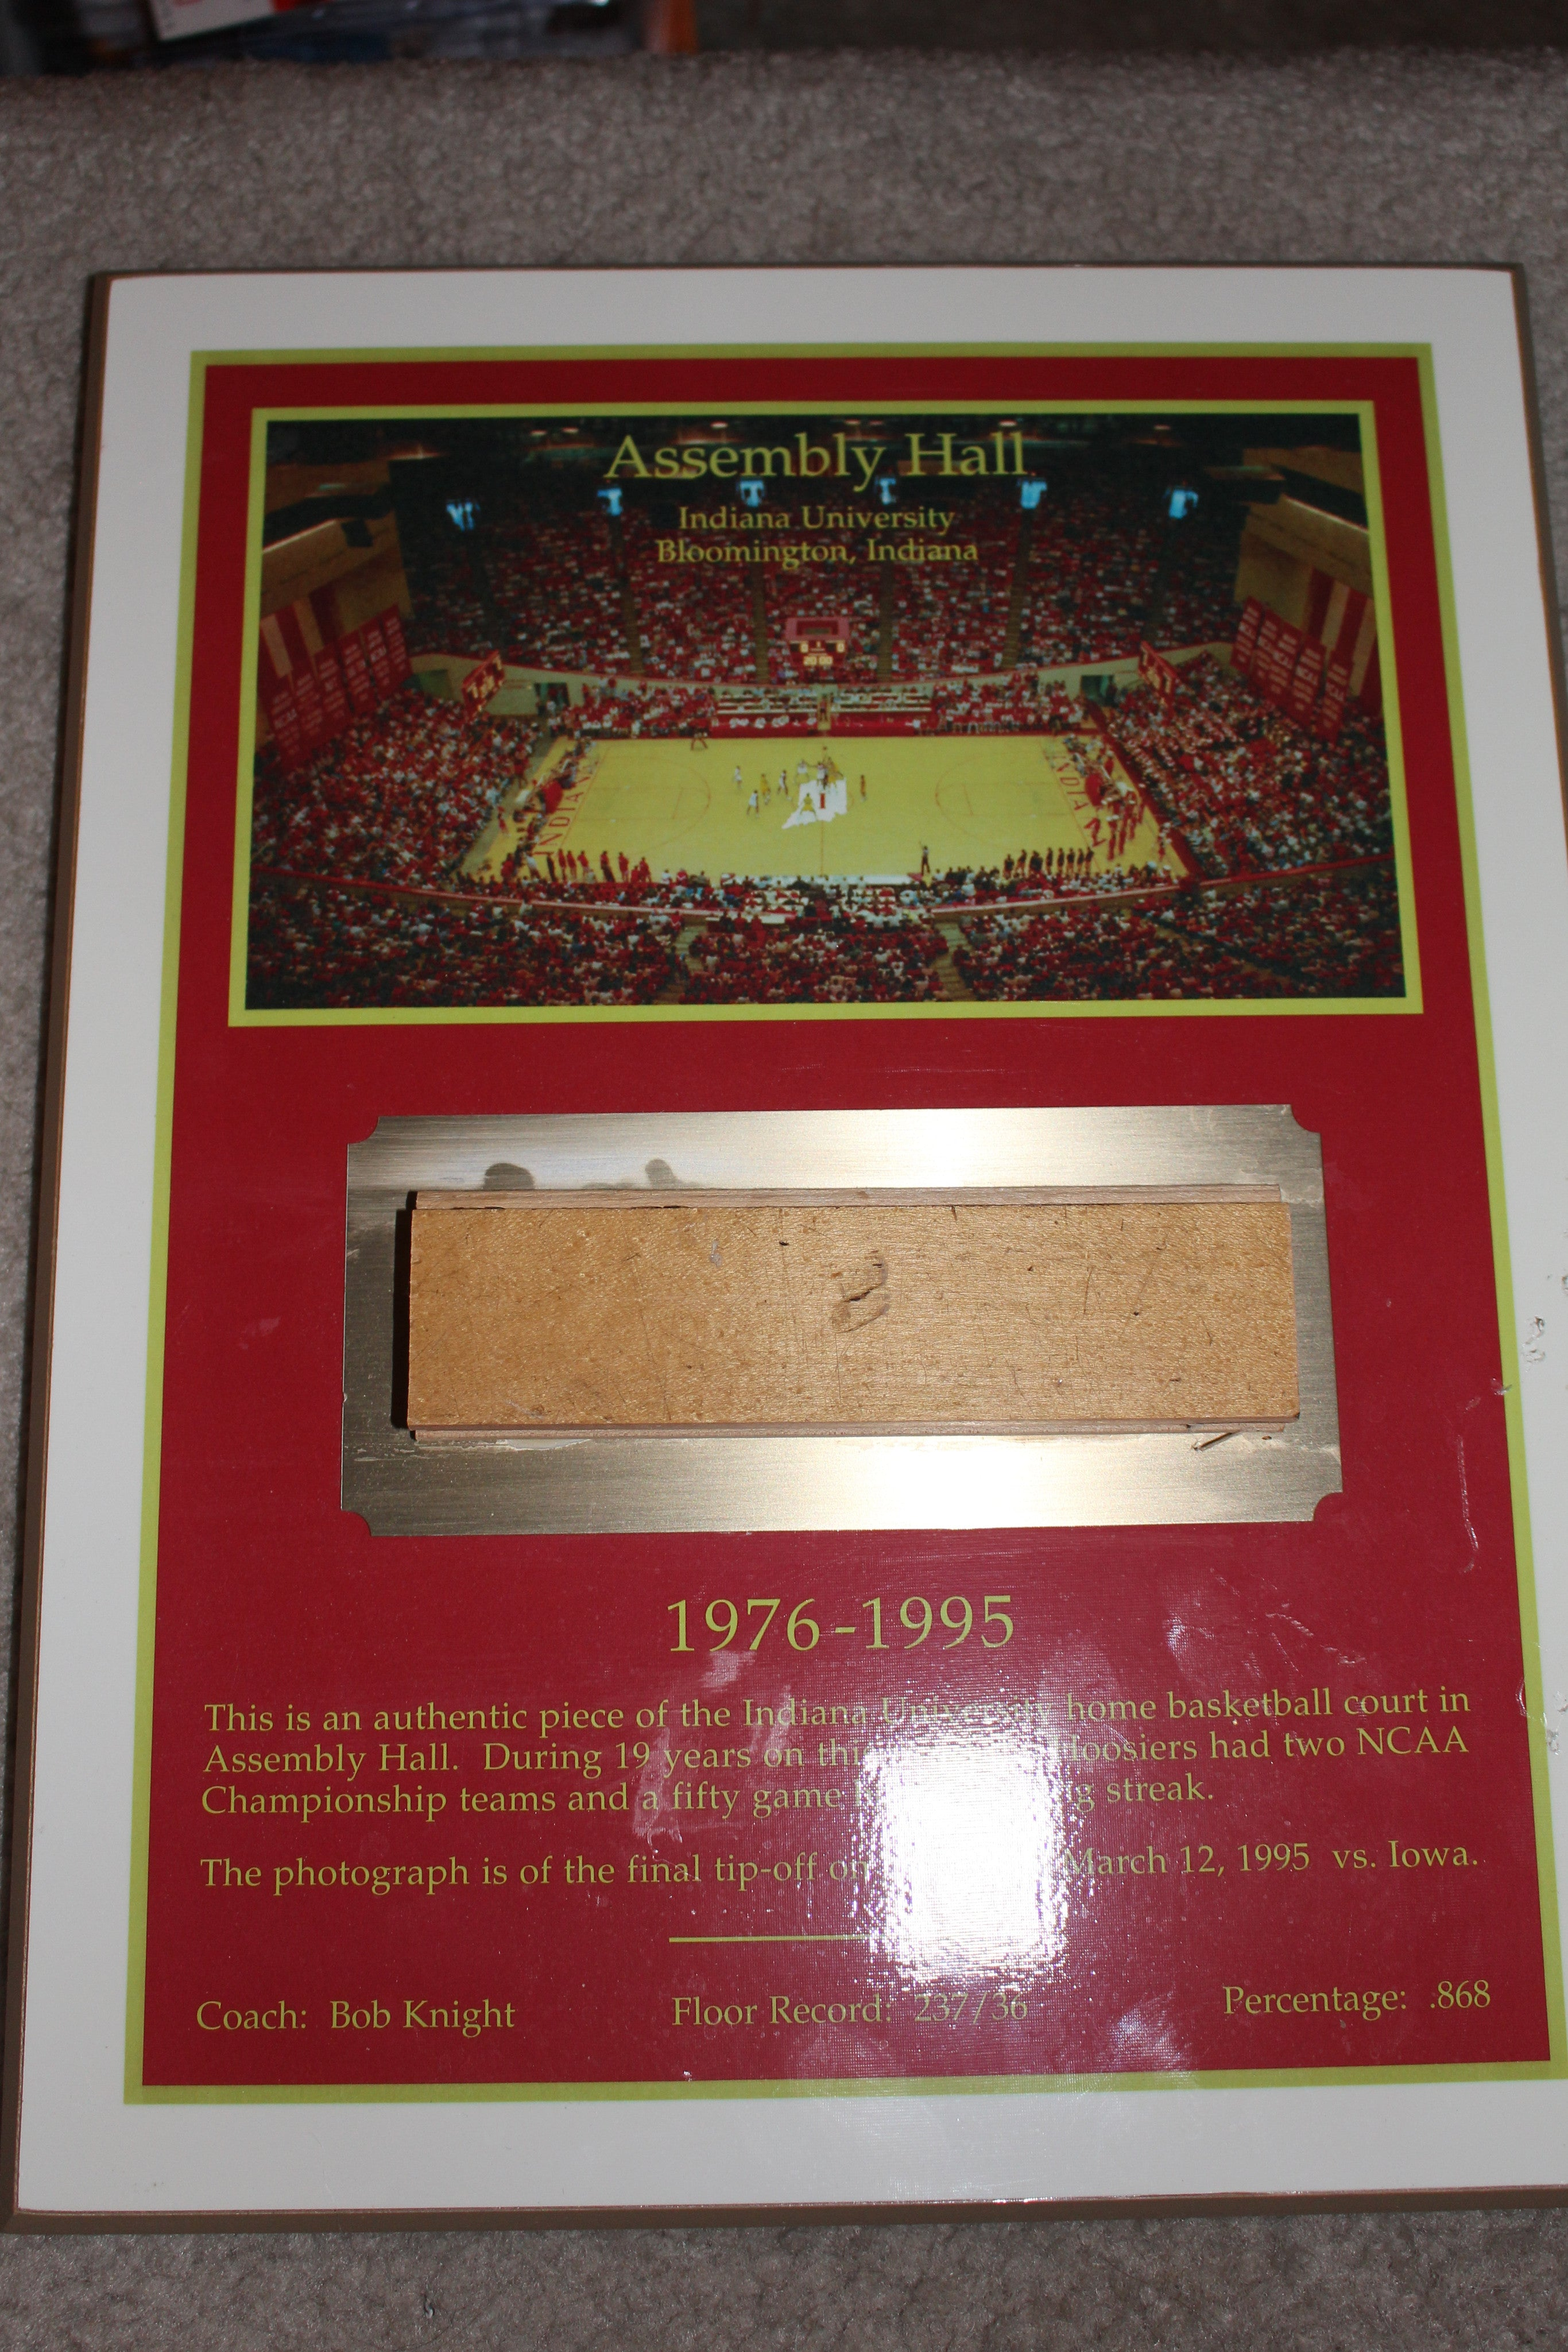 1976-95 Indiana University Basketball Assembly Hall Floor Piece Plaque - Vintage Indy Sports